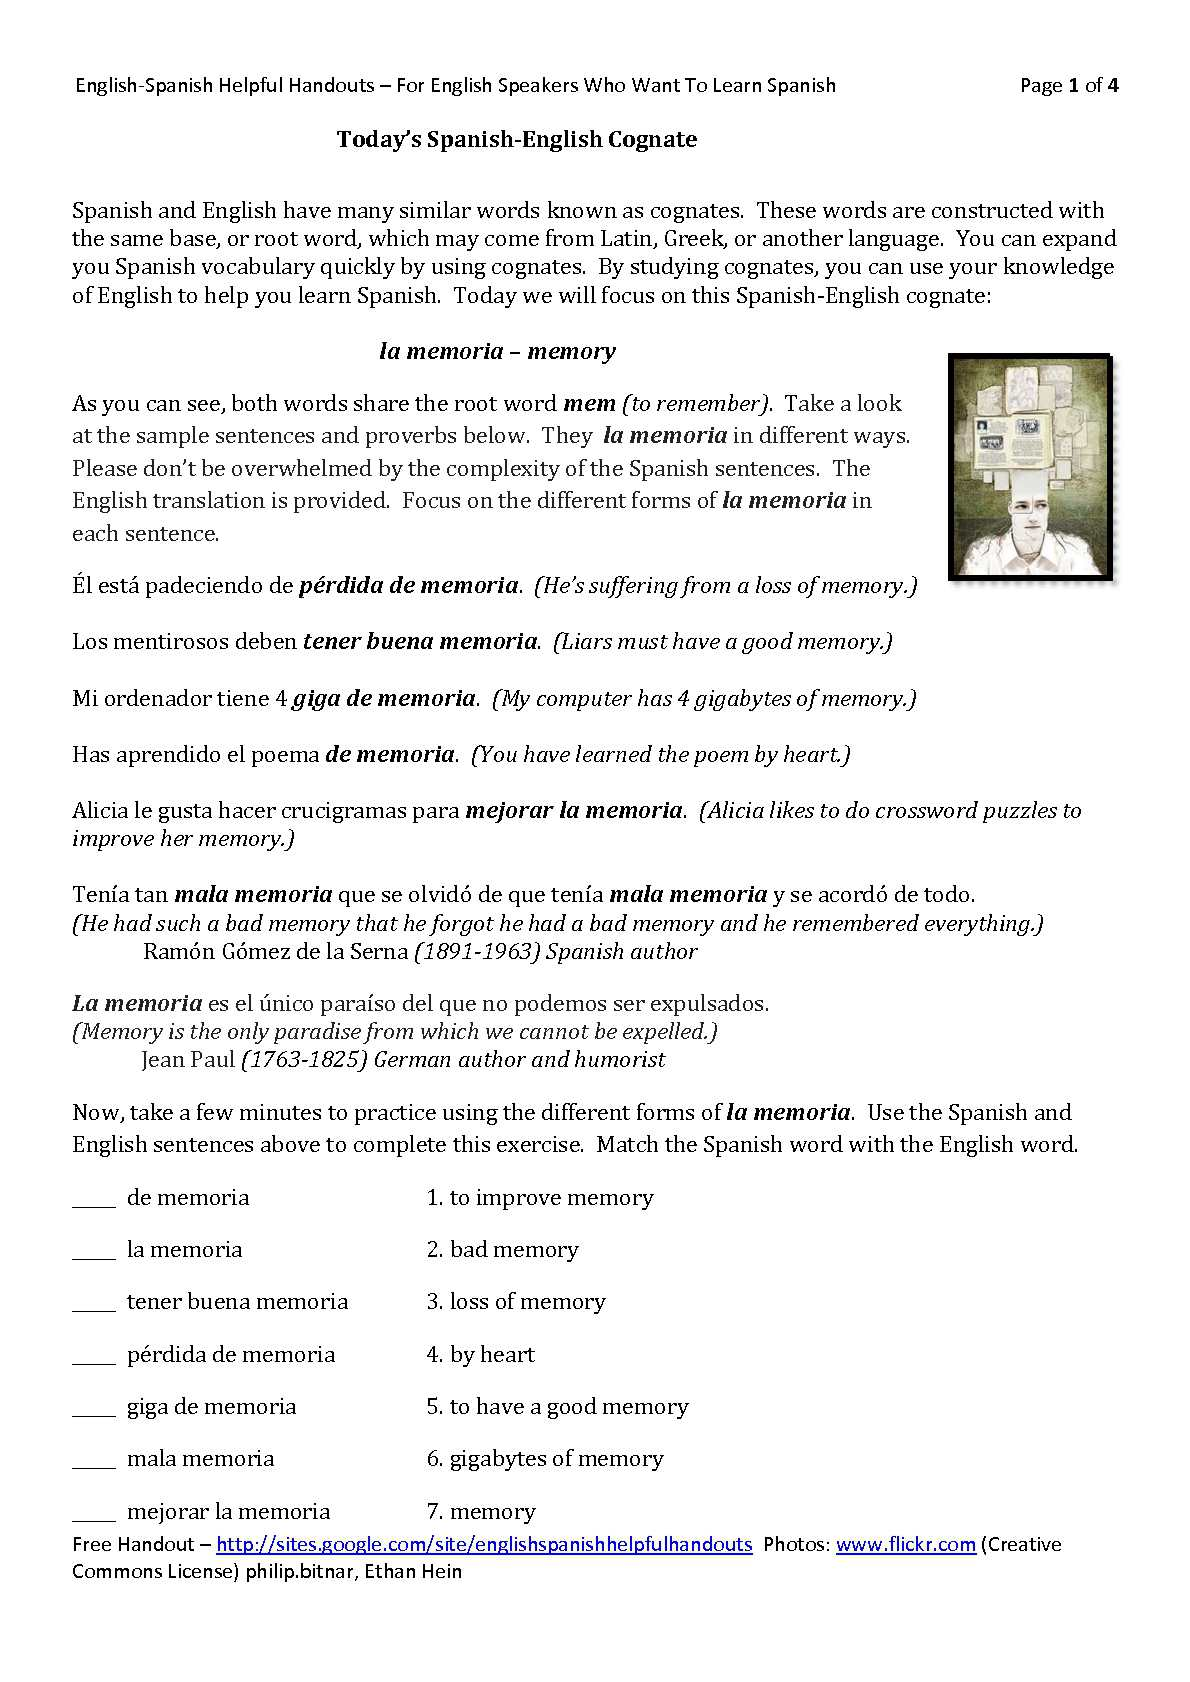 Worksheets Spanish Cognates Worksheet todays english spanish cognate